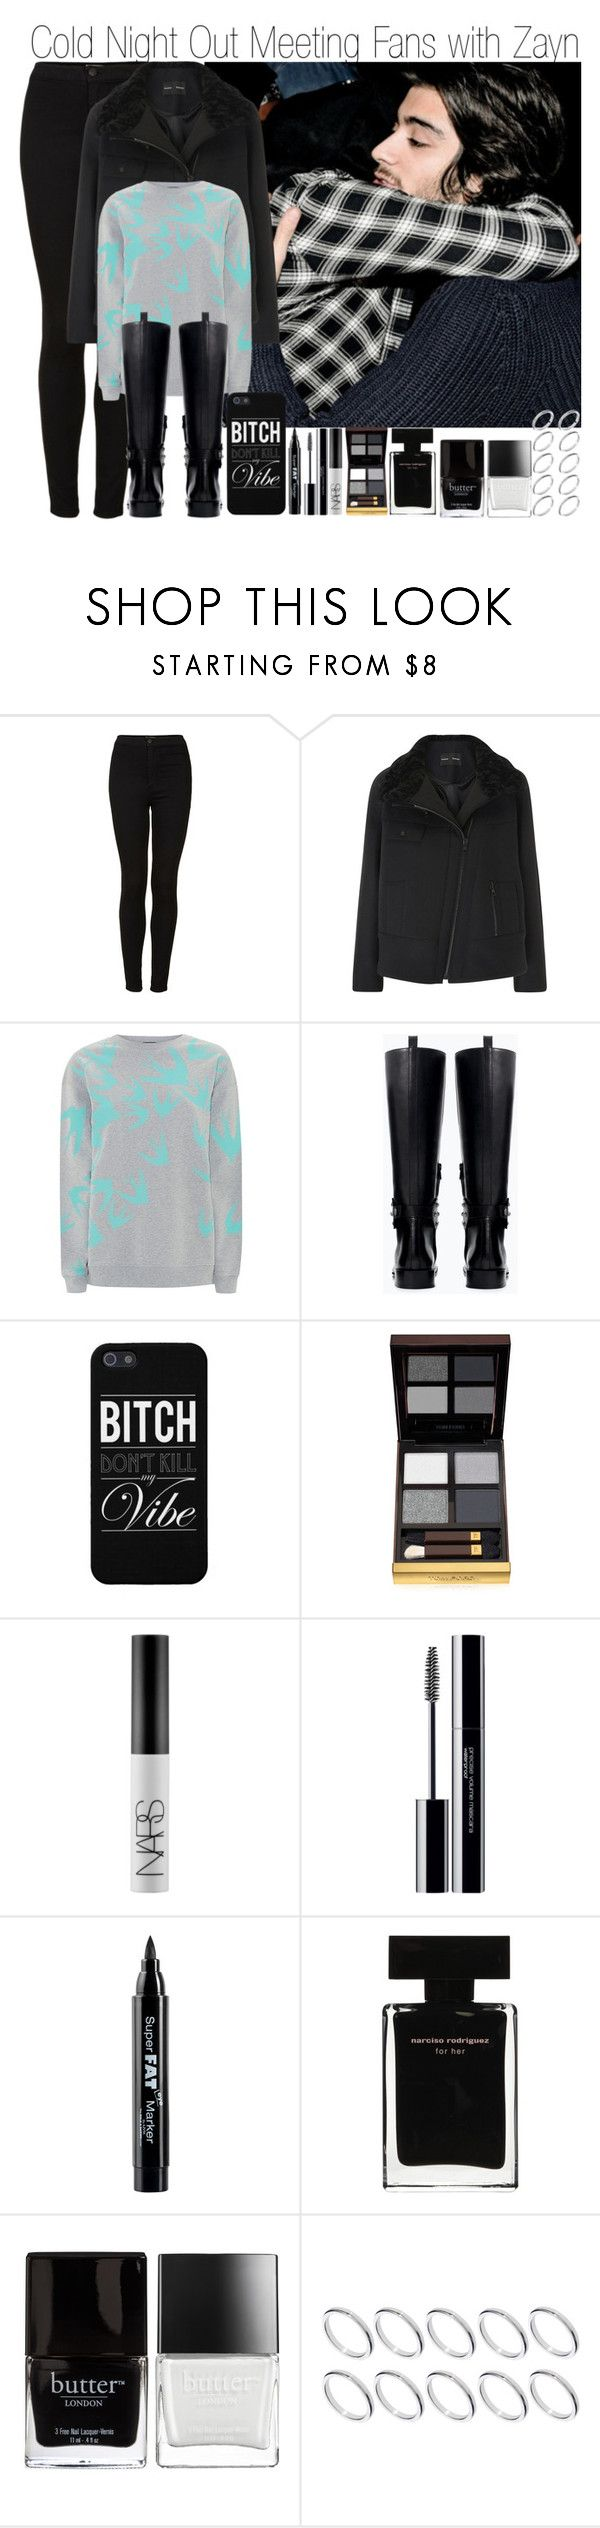 """""""Cold Night Out Meeting Fans with Zayn"""" by elise-22 ❤ liked on Polyvore featuring Topshop, Proenza Schouler, McQ by Alexander McQueen, Zara, Tom Ford, NARS Cosmetics, shu uemura, NYX, Narciso Rodriguez and Butter London"""